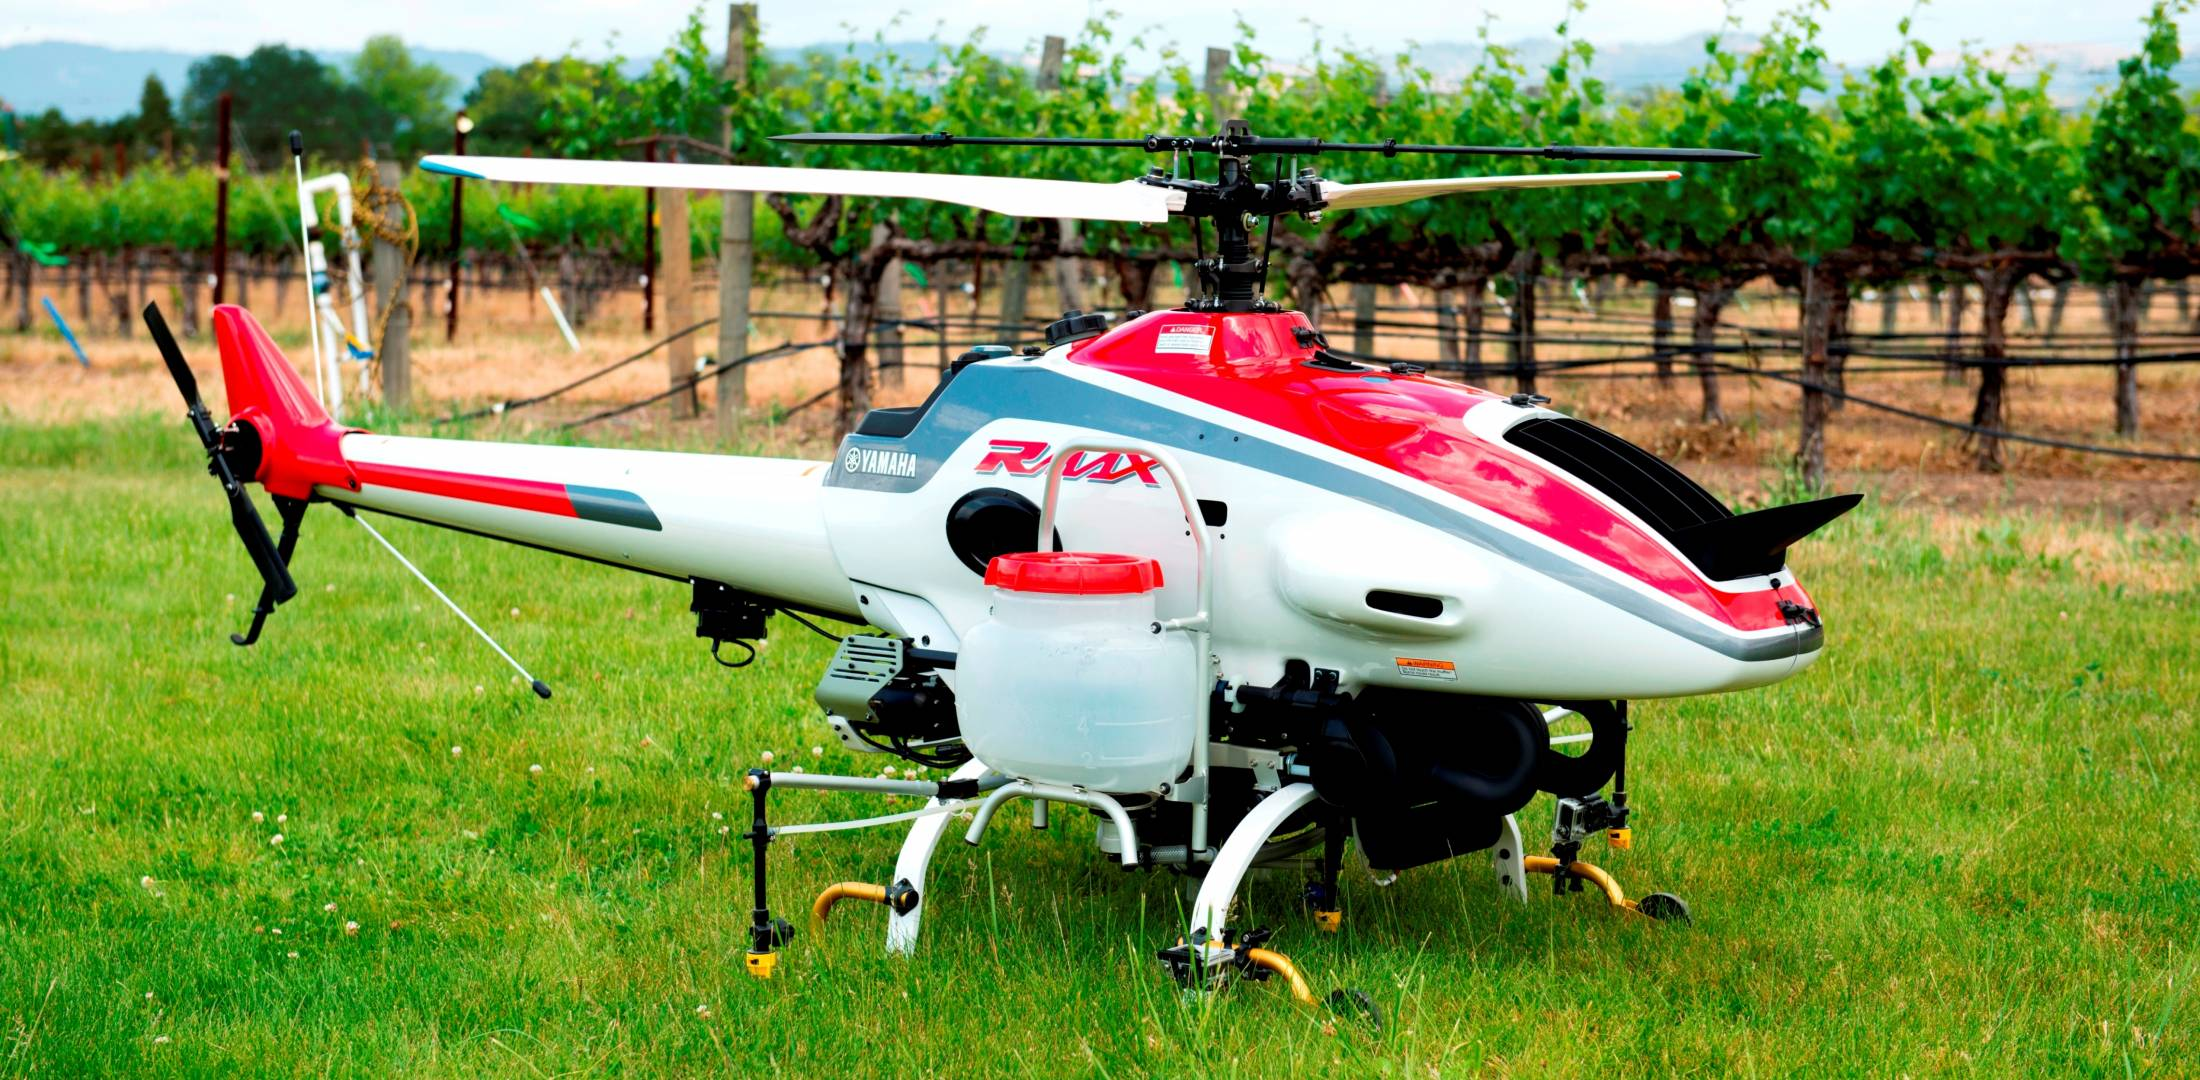 Yamaha RMax unmanned helicopter